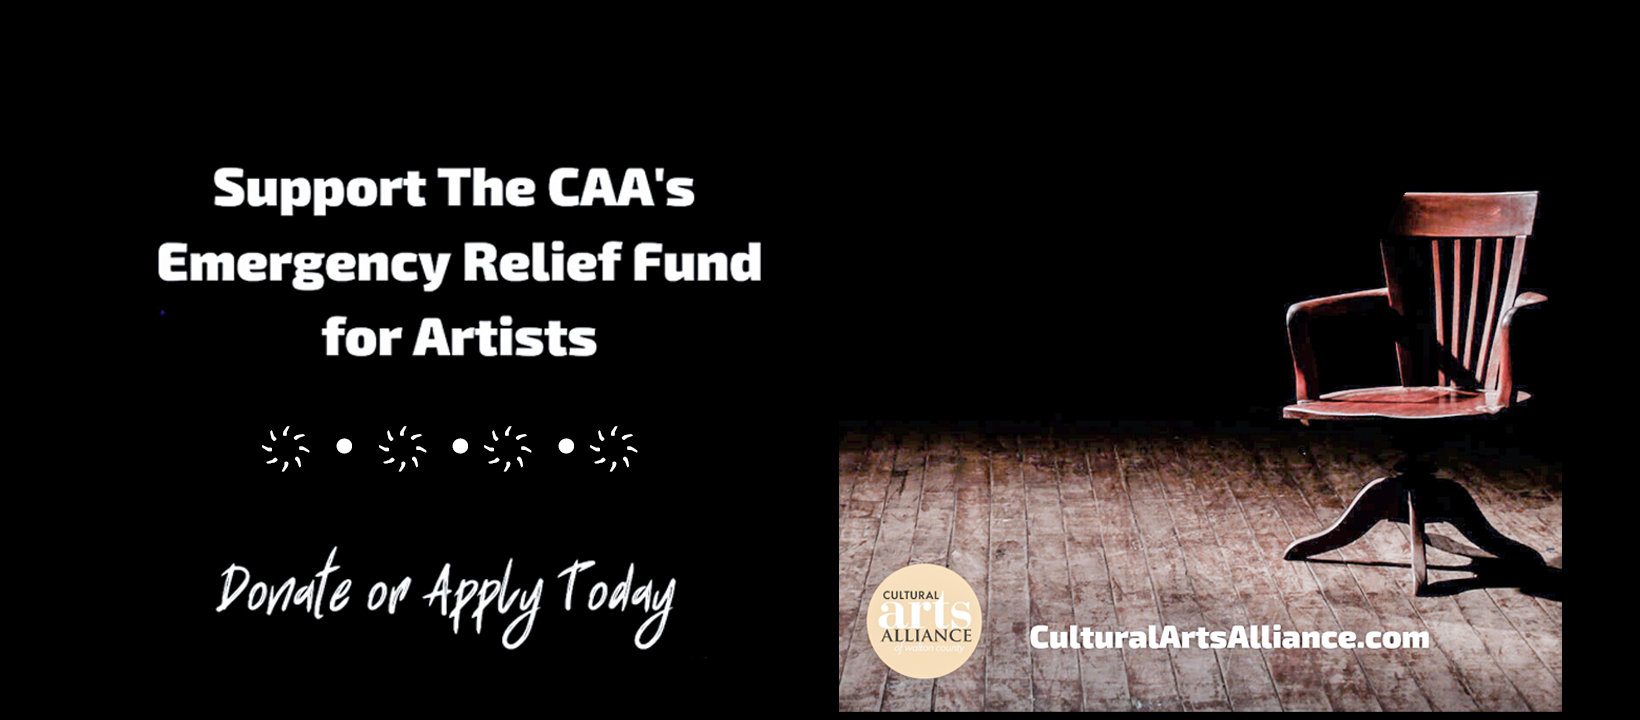 Cultural Arts Alliance Emergency Relief Grant Program